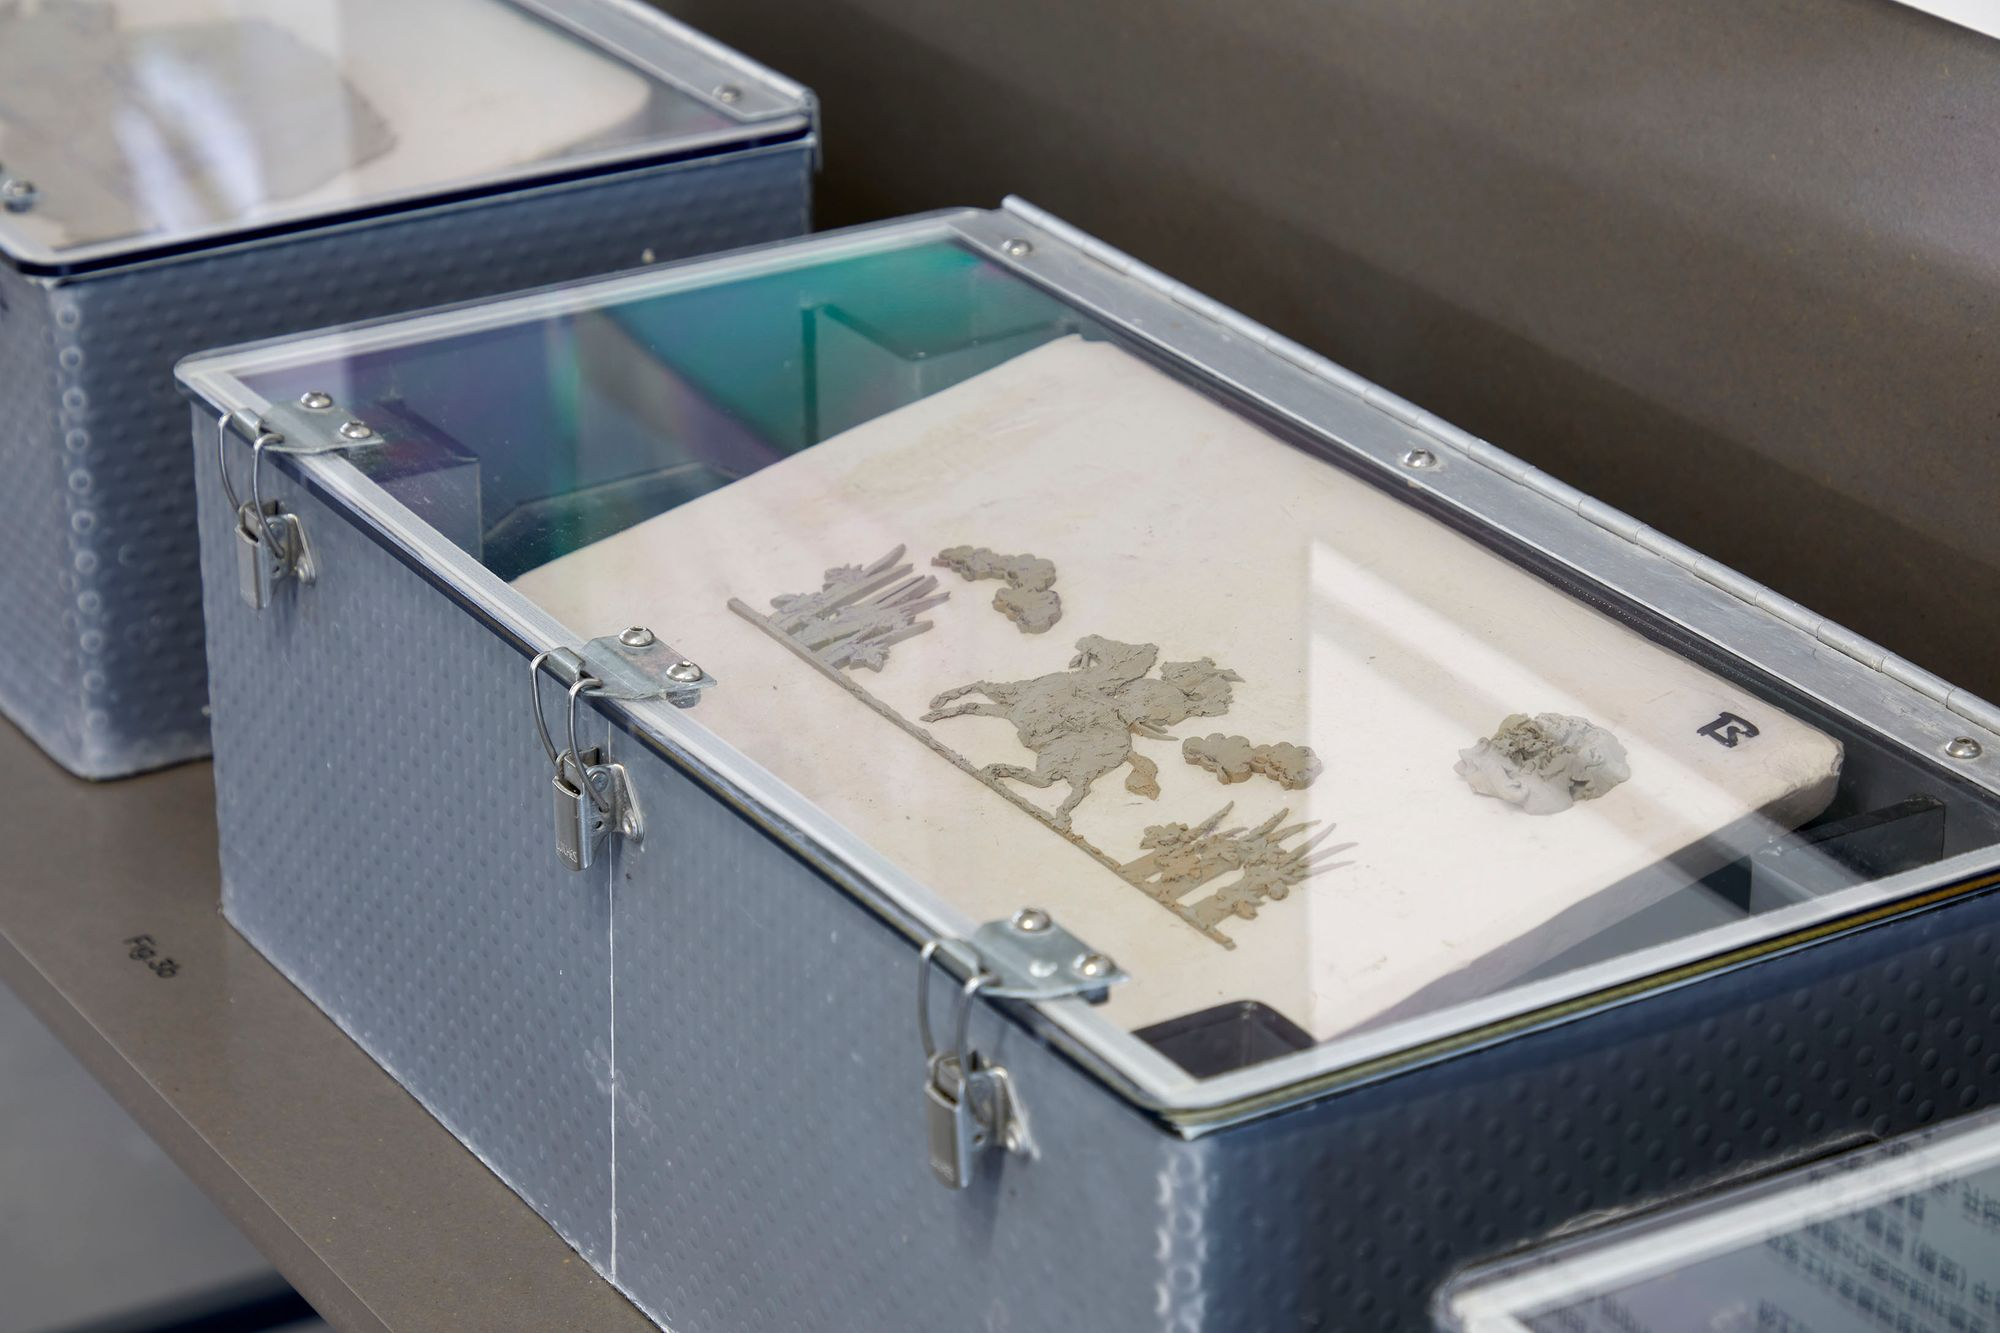 Box with clear perspex lid showing the process of creating reliefs to be applied to ceramic products.